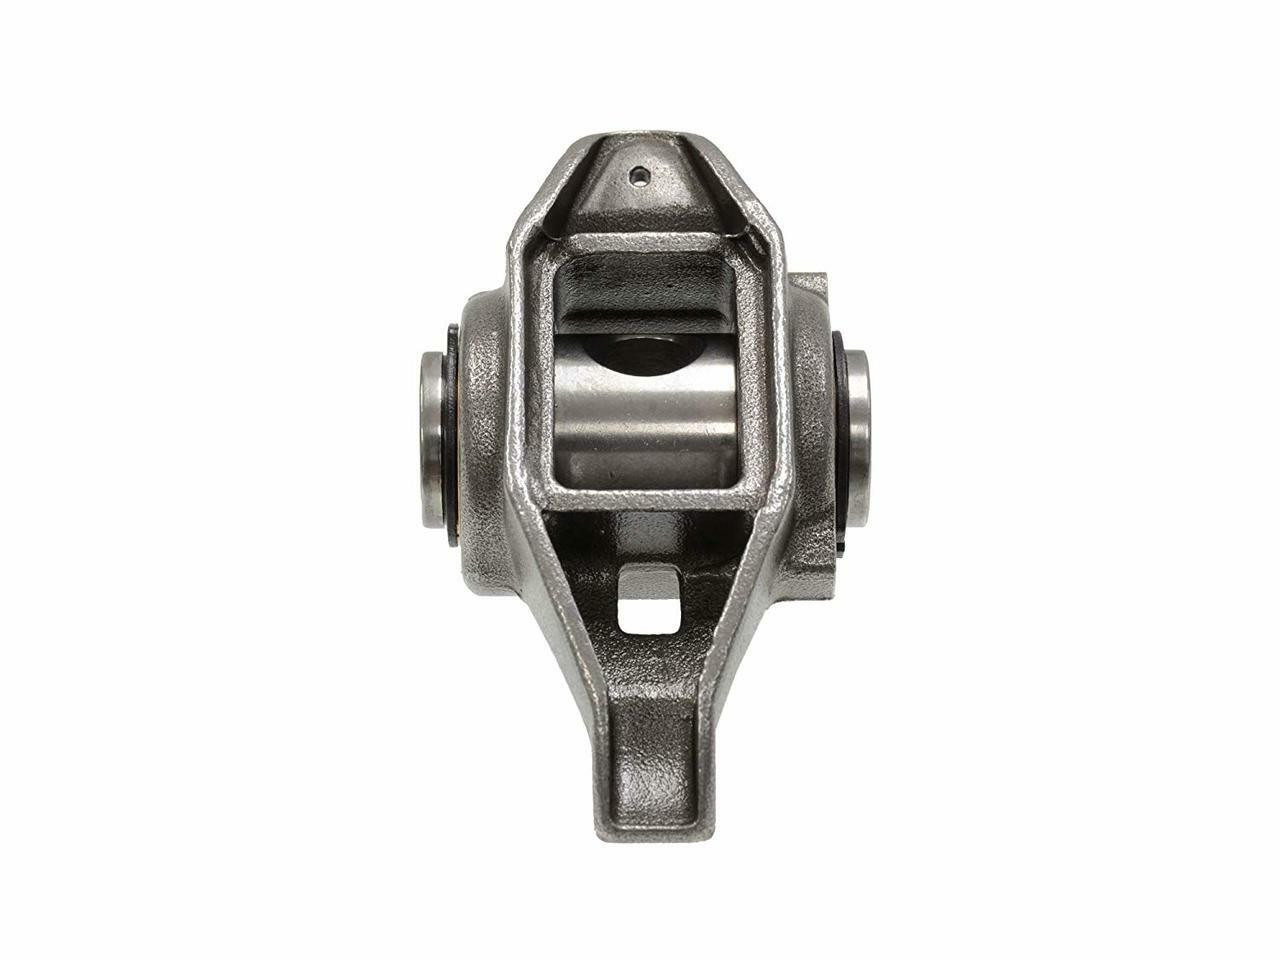 LS1 Rocker Arms with upgraded Bronze Bushing Trunion Kit Includes LS1 Rocker Arm Support Pedestal Stands Pair 4.8 5.3 5.7 6.0 LS1 LS2